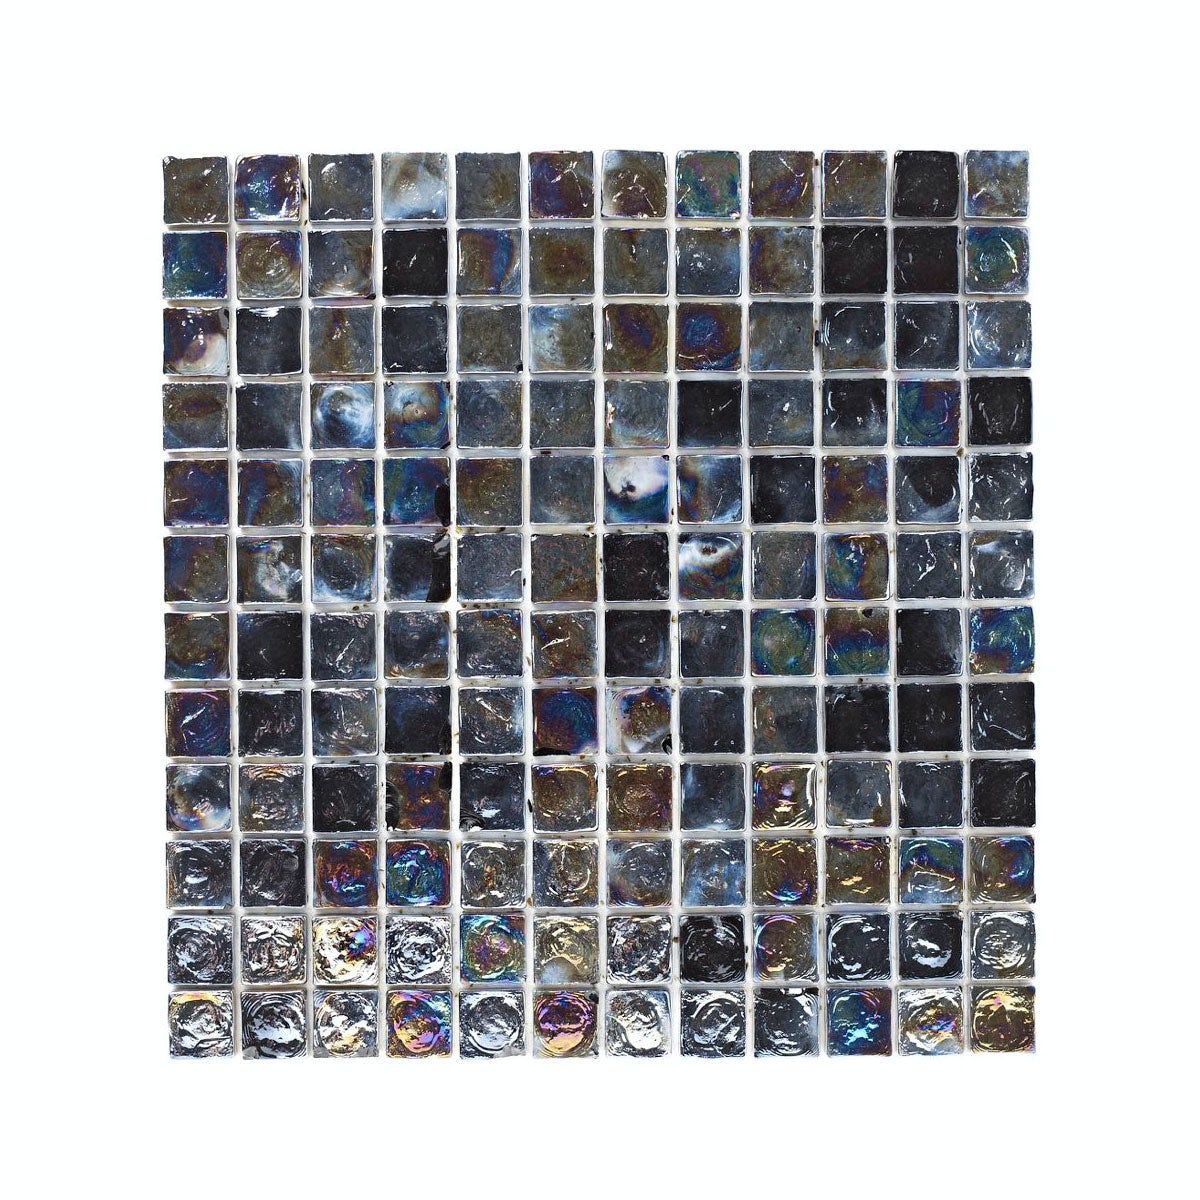 British Ceramic Tile Mosaic iridescent black gloss tile 305mm x 305mm - 1 sheet